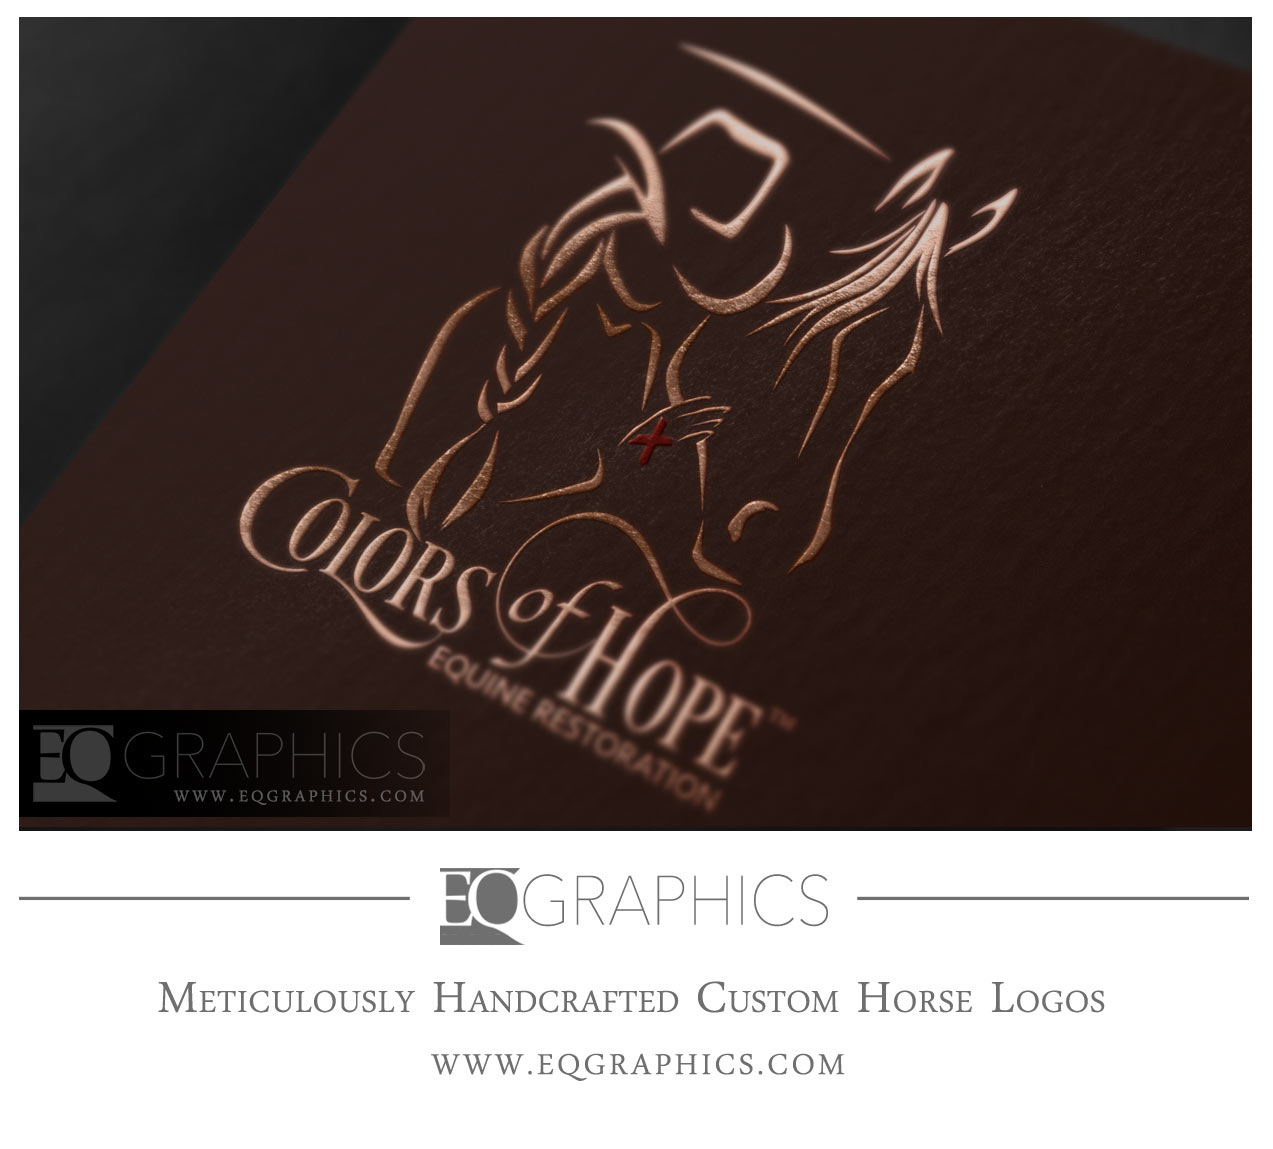 Colors of Hope Cowgirl Horse Person Ranch Logo Design by EQ Graphics Equine Logos